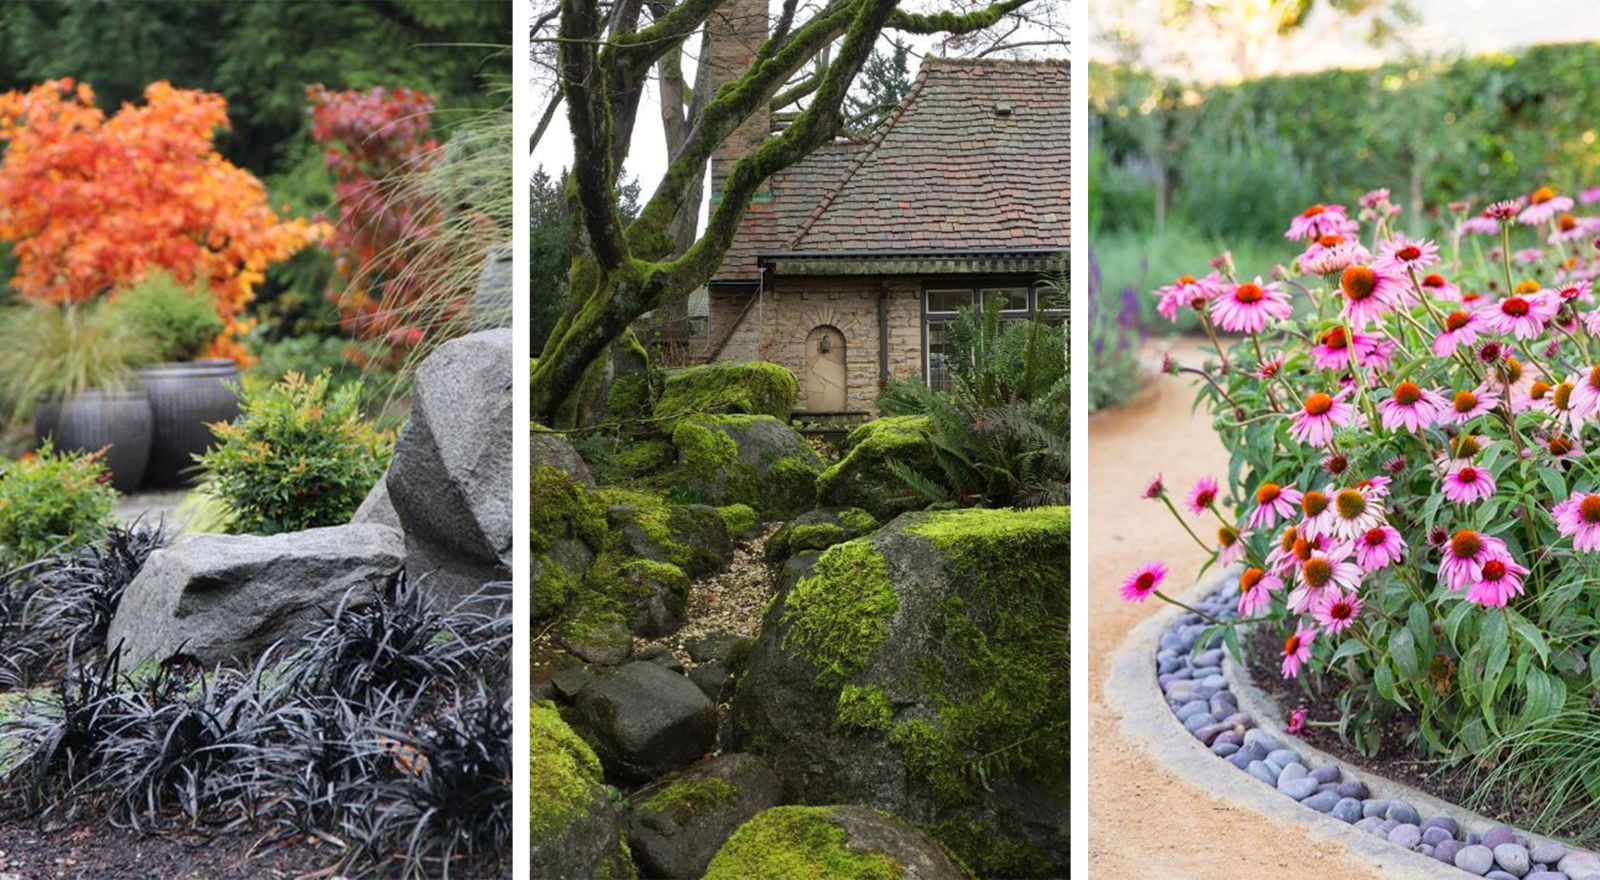 The 1 Trend In Gardening Right Now Is Extreme Naturalism